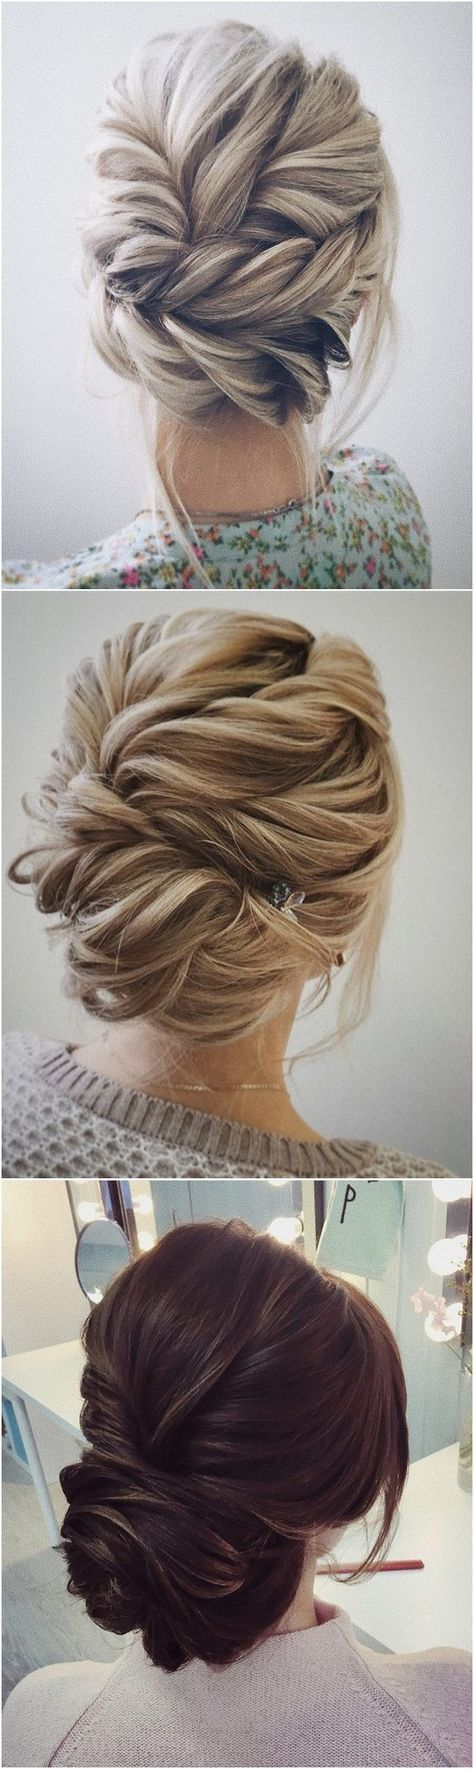 beautiful twisted updo wedding hairstyle ideas